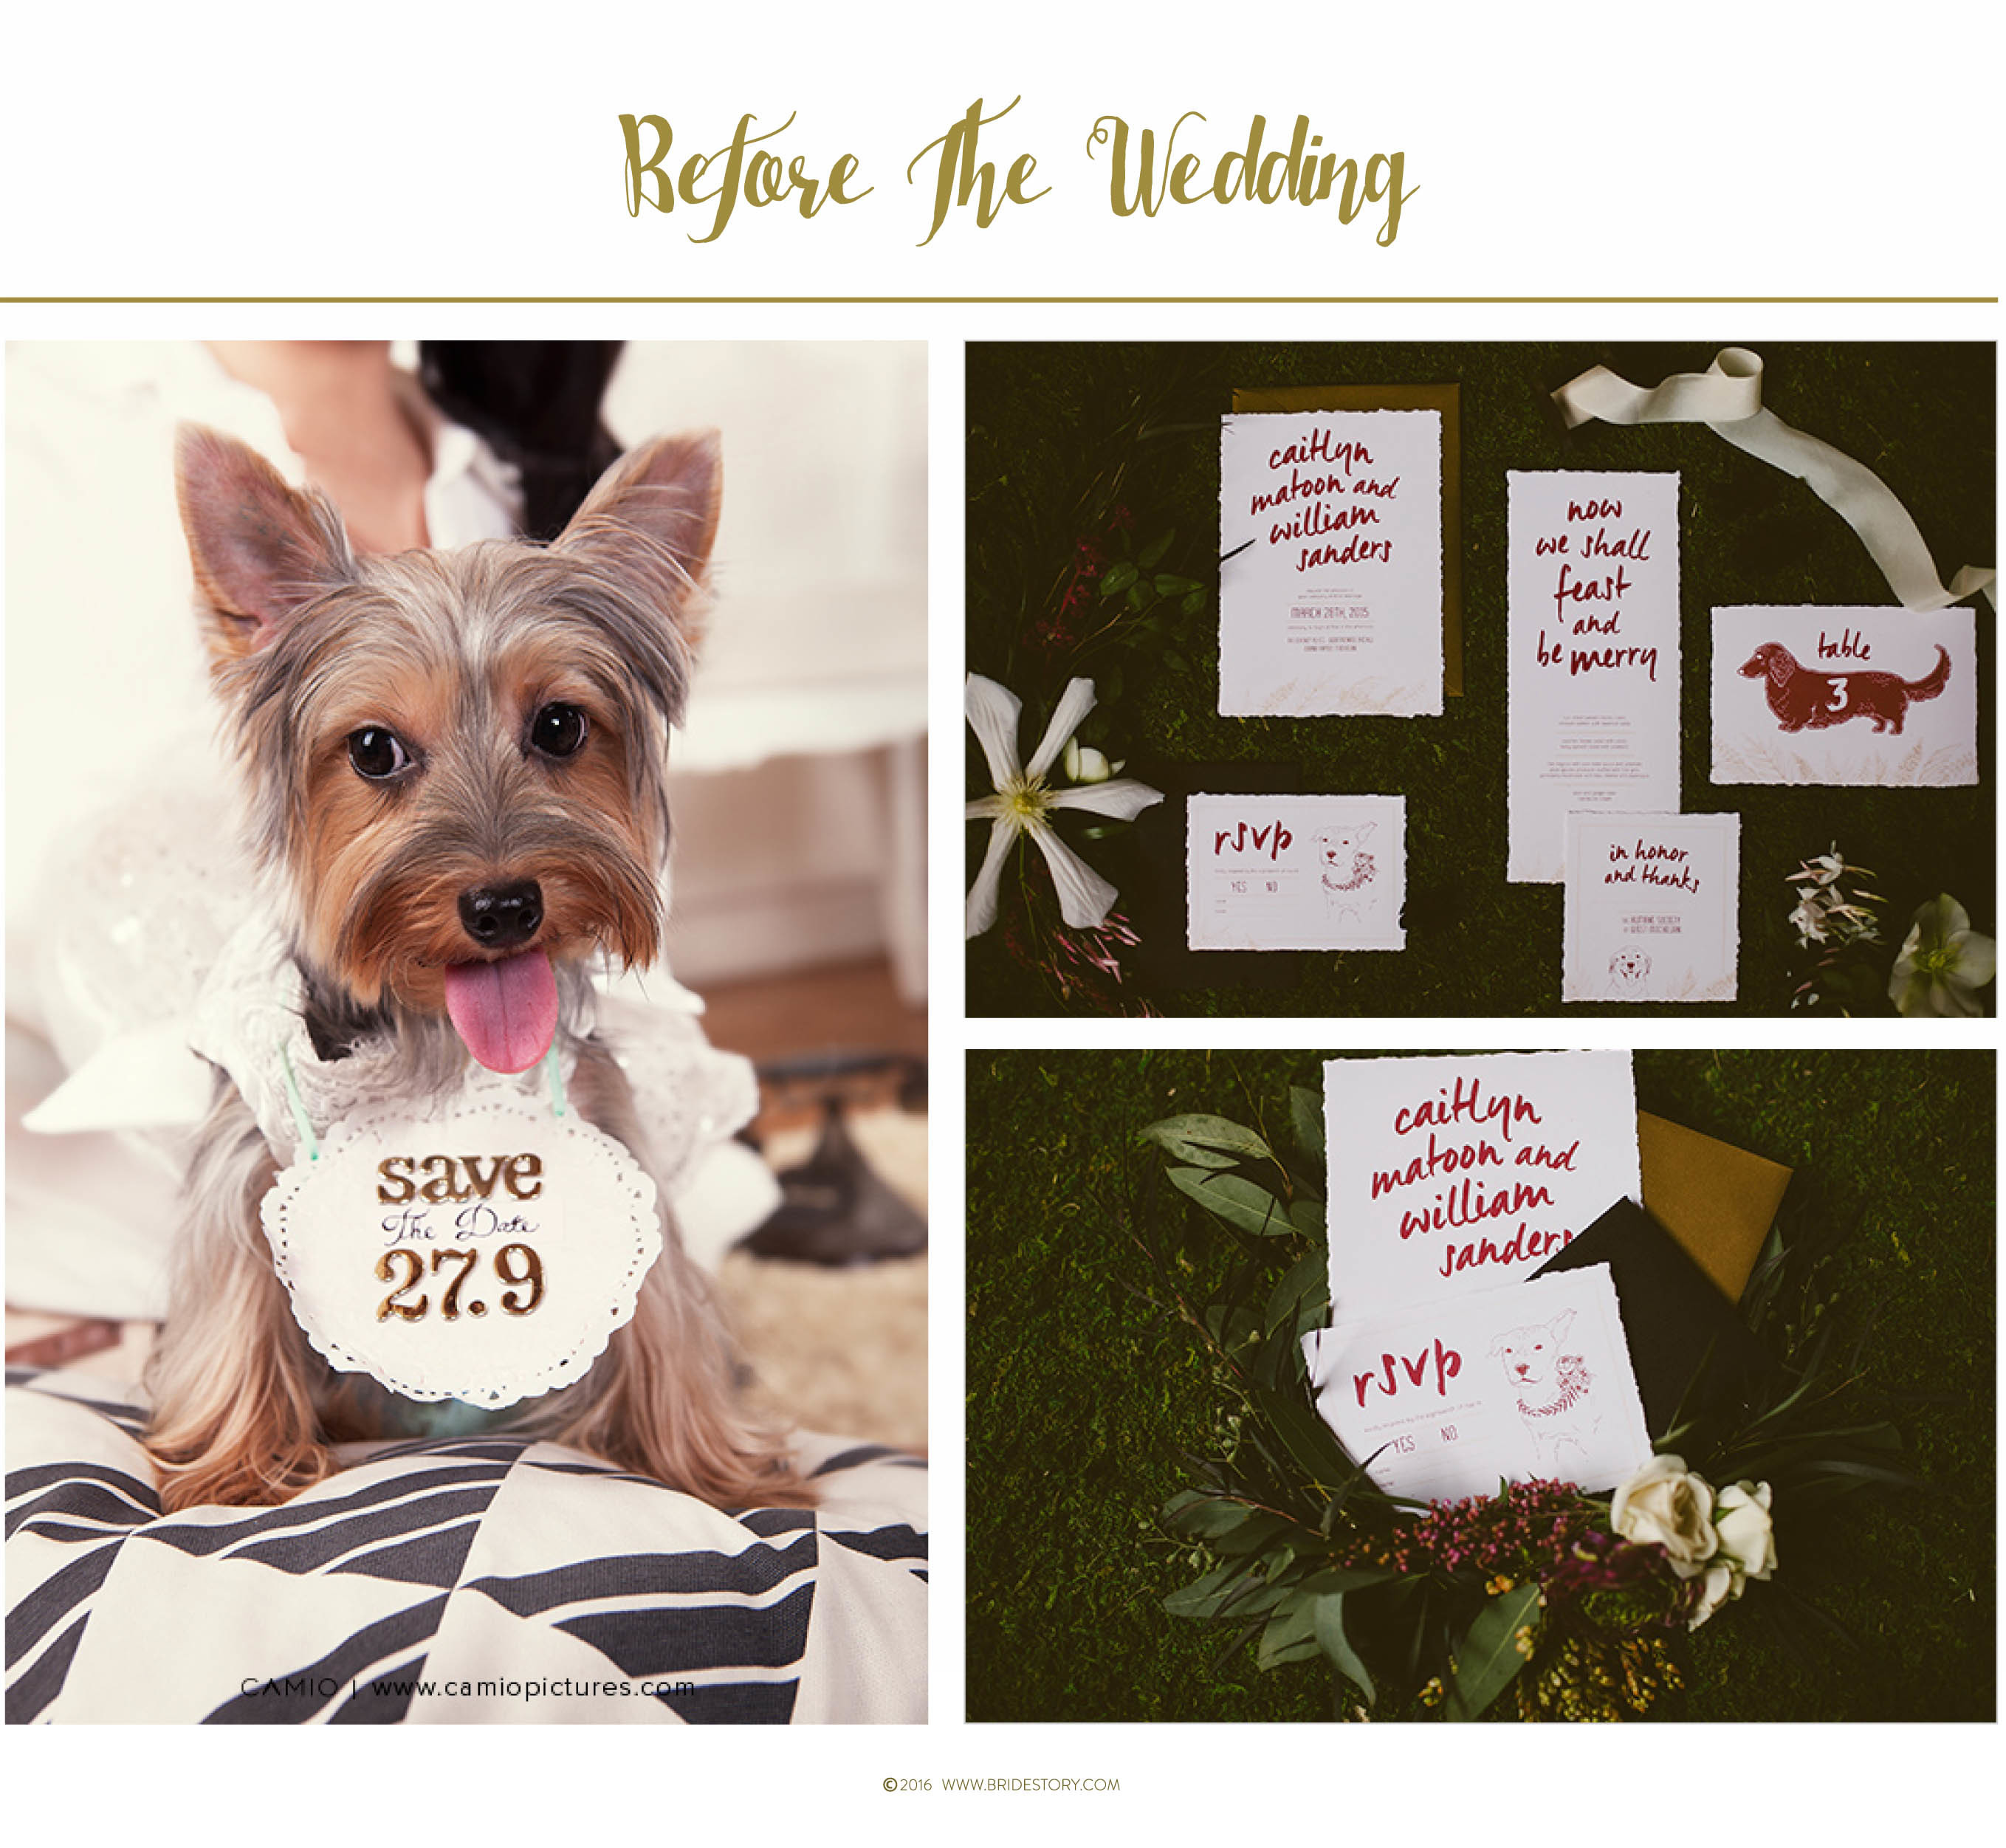 How to Involve Pets in Your Wedding Image 1